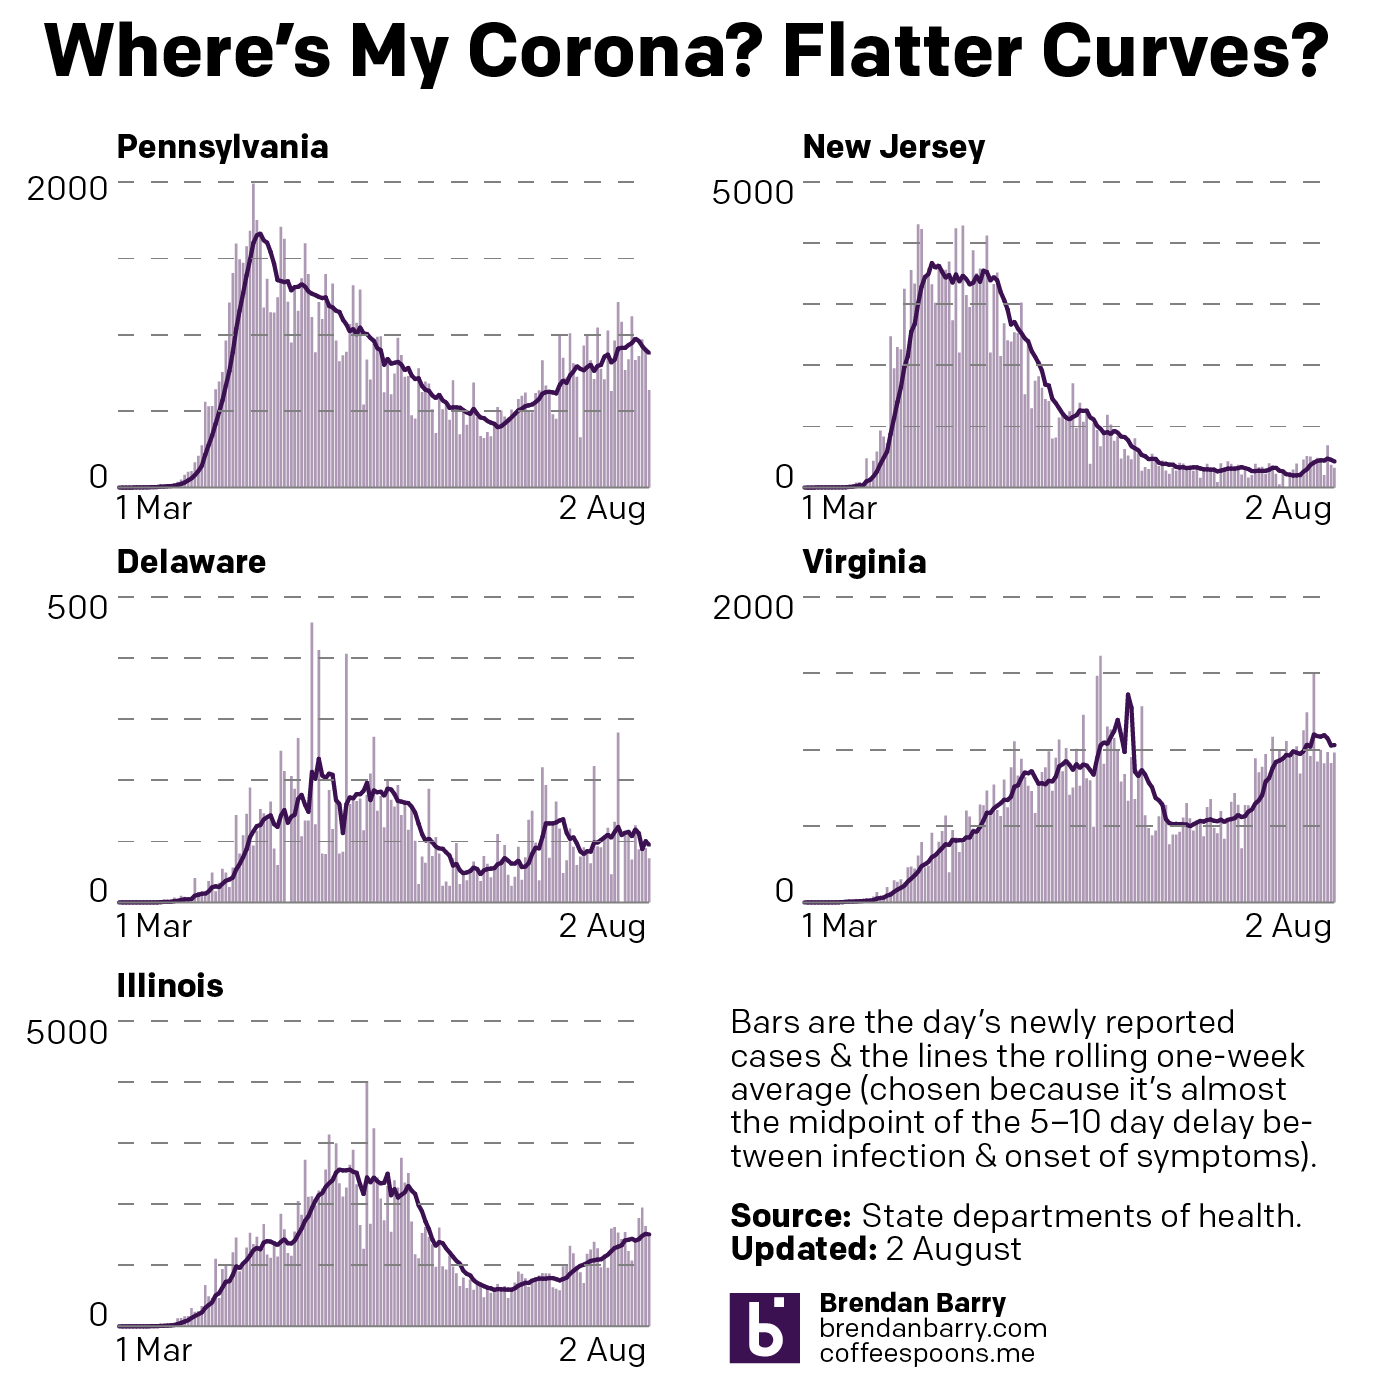 The Covid-19 curves for PA, NJ, DE, VA, and IL